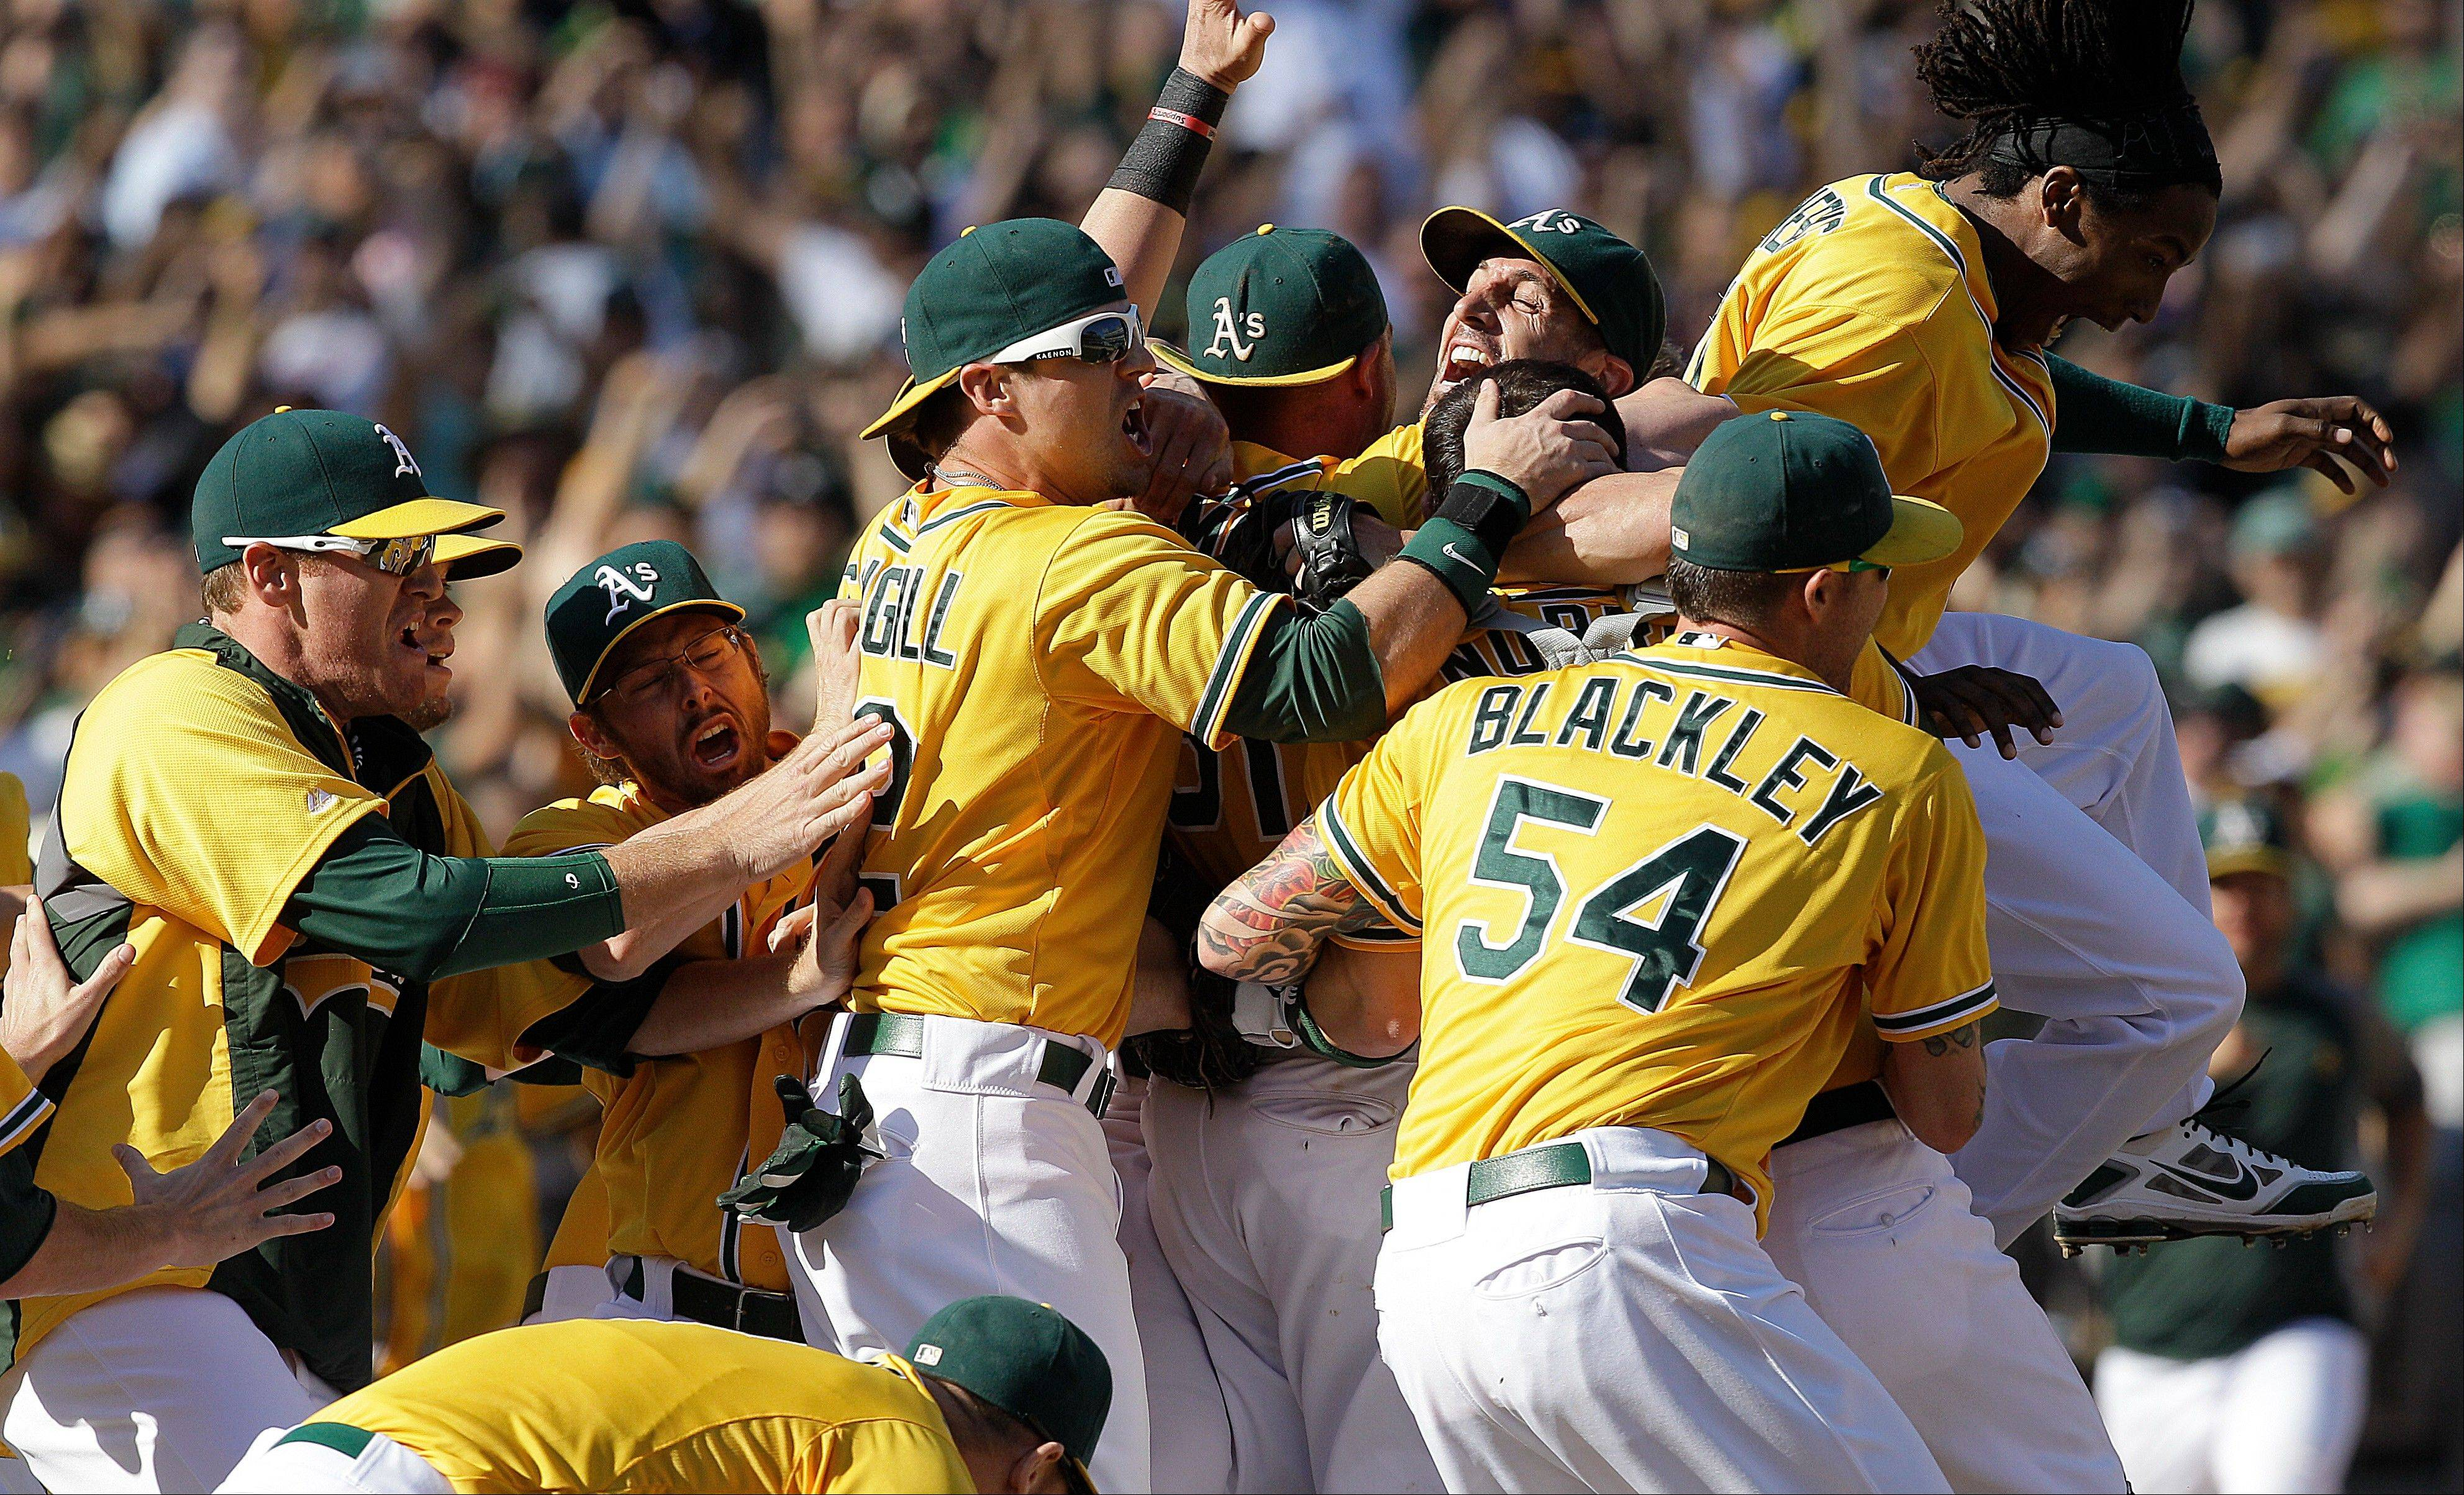 Oakland Athletics players celebrate after clinching the American League West at home Wednesday.